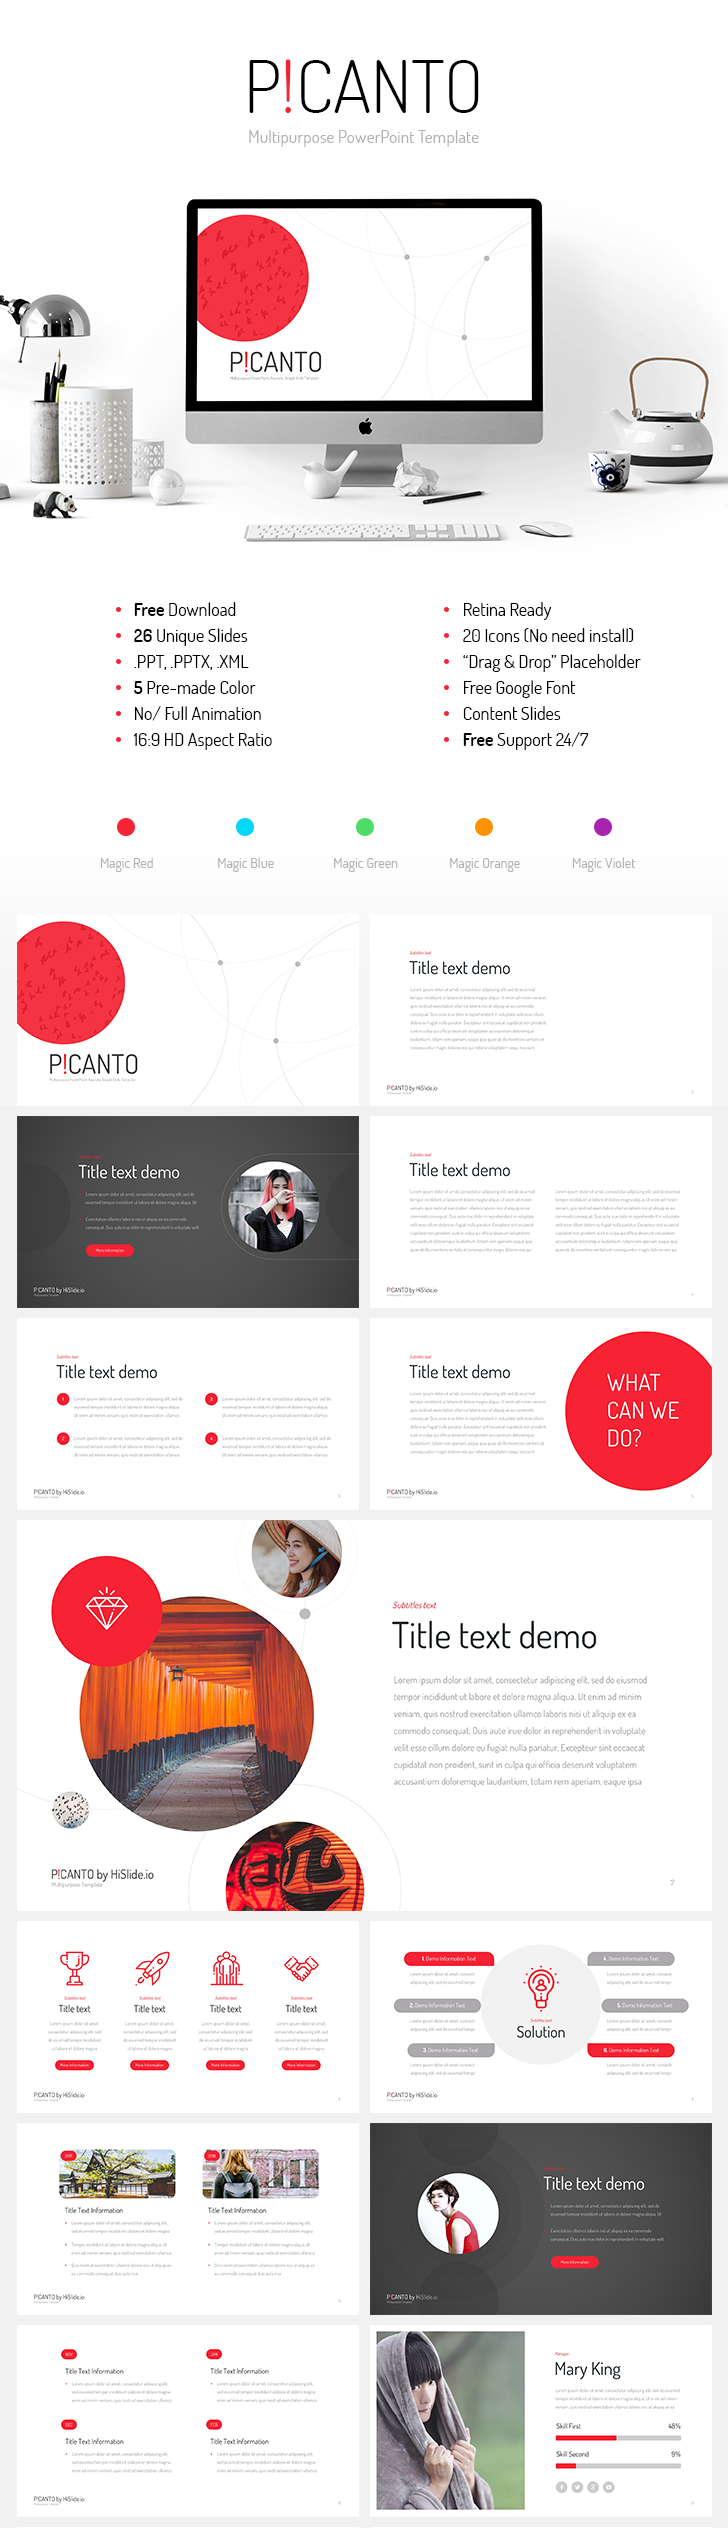 Picanto ppt template free download total 130 slides picanto ppt template free download toneelgroepblik Gallery